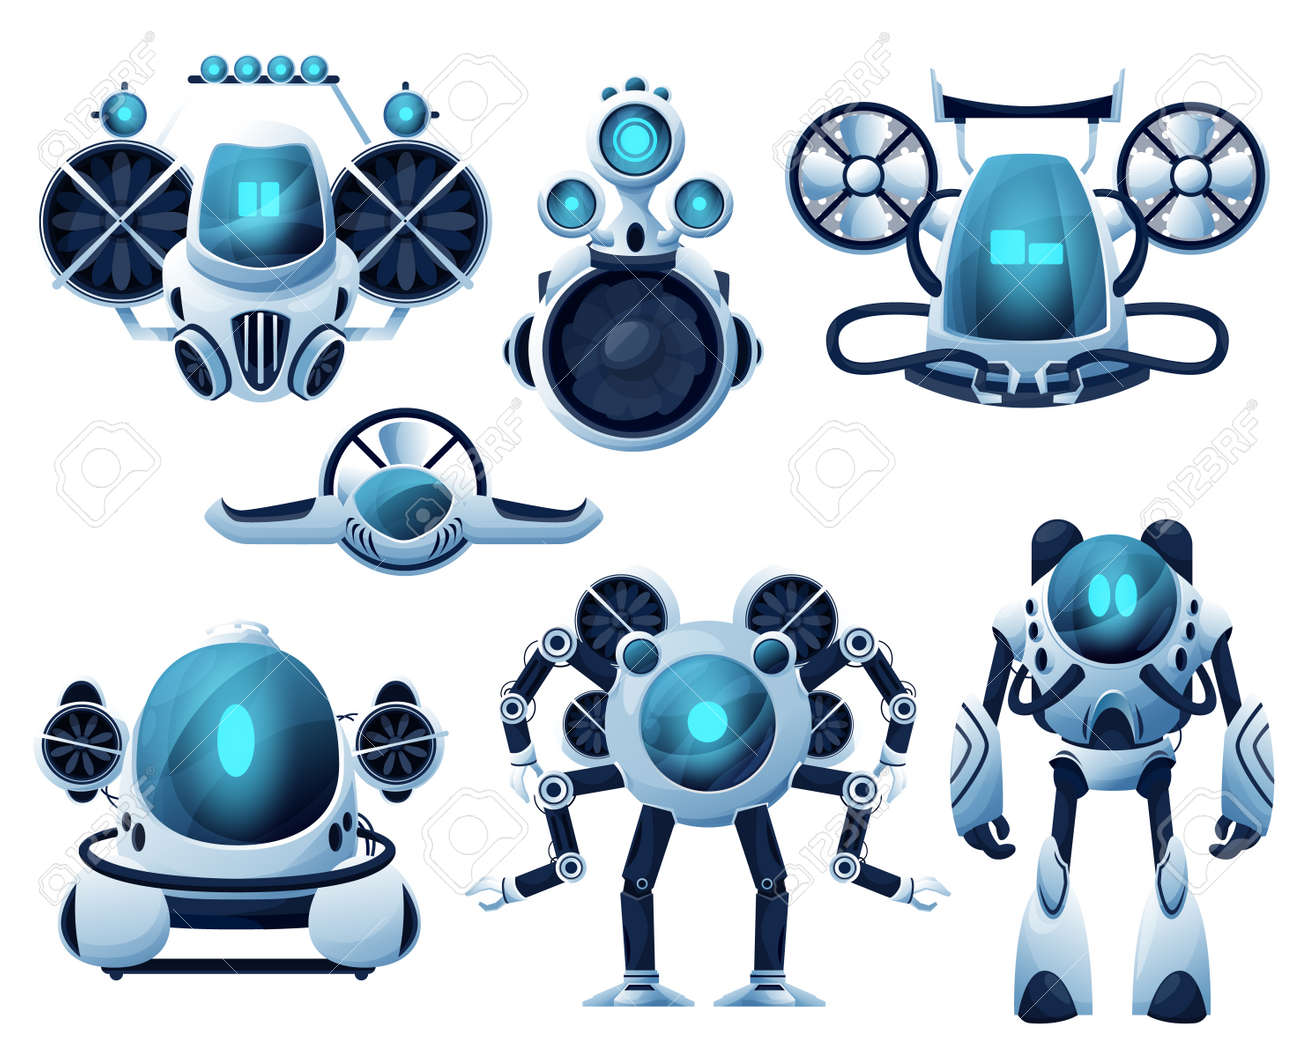 Underwater robot and ROV cartoon characters. Vector robot bathyscaphe and submarine, autonomous and unmanned underwater vehicles with manipulator arms and propellers, sea exploration manipulators - 167723205